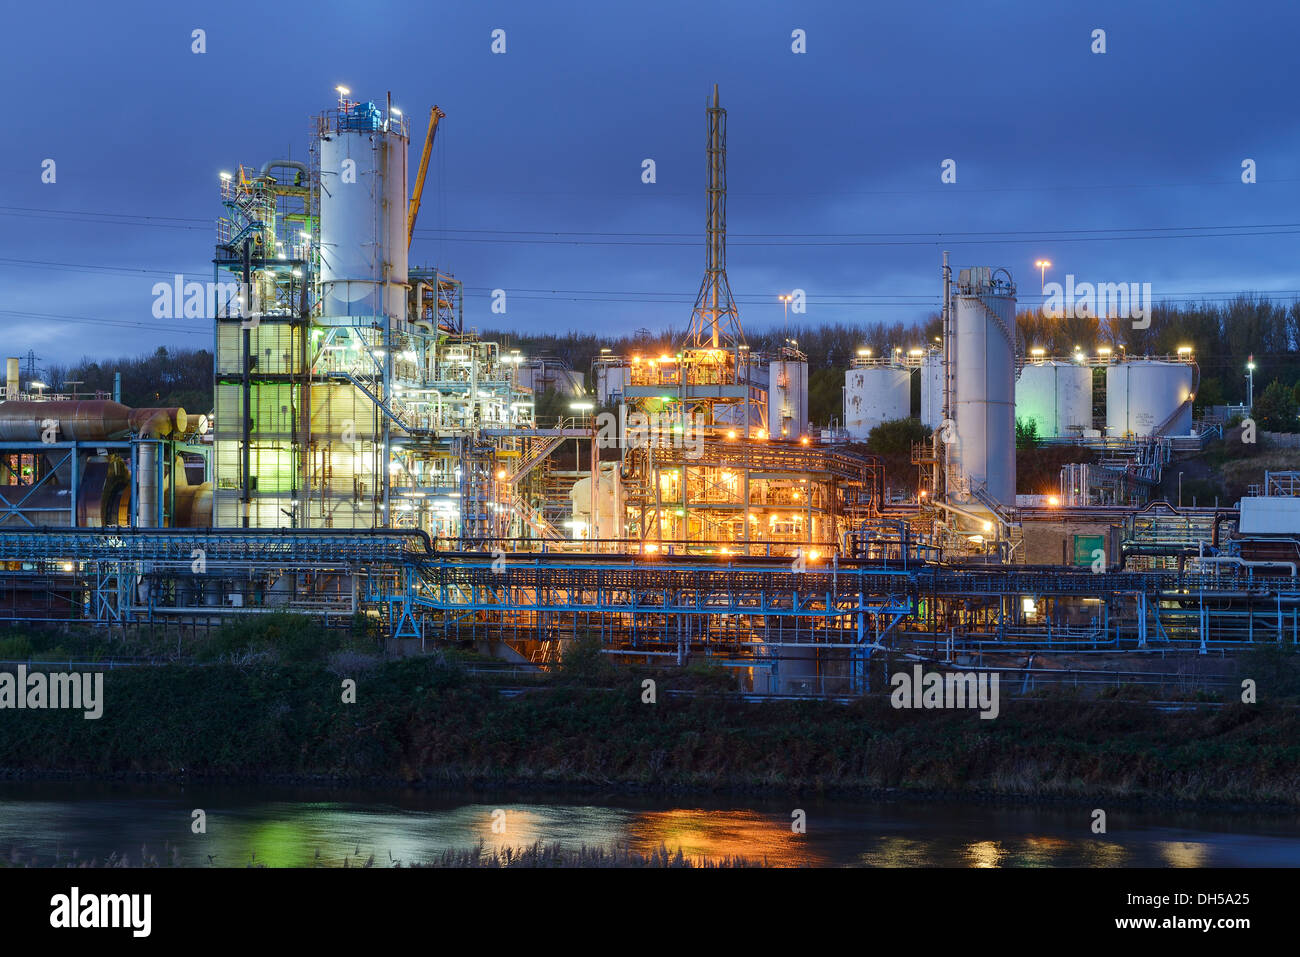 Evening lights from part of the Ineos Chlor industrial chemical works on the River Mersey estuary in Runcorn Cheshire UK - Stock Image